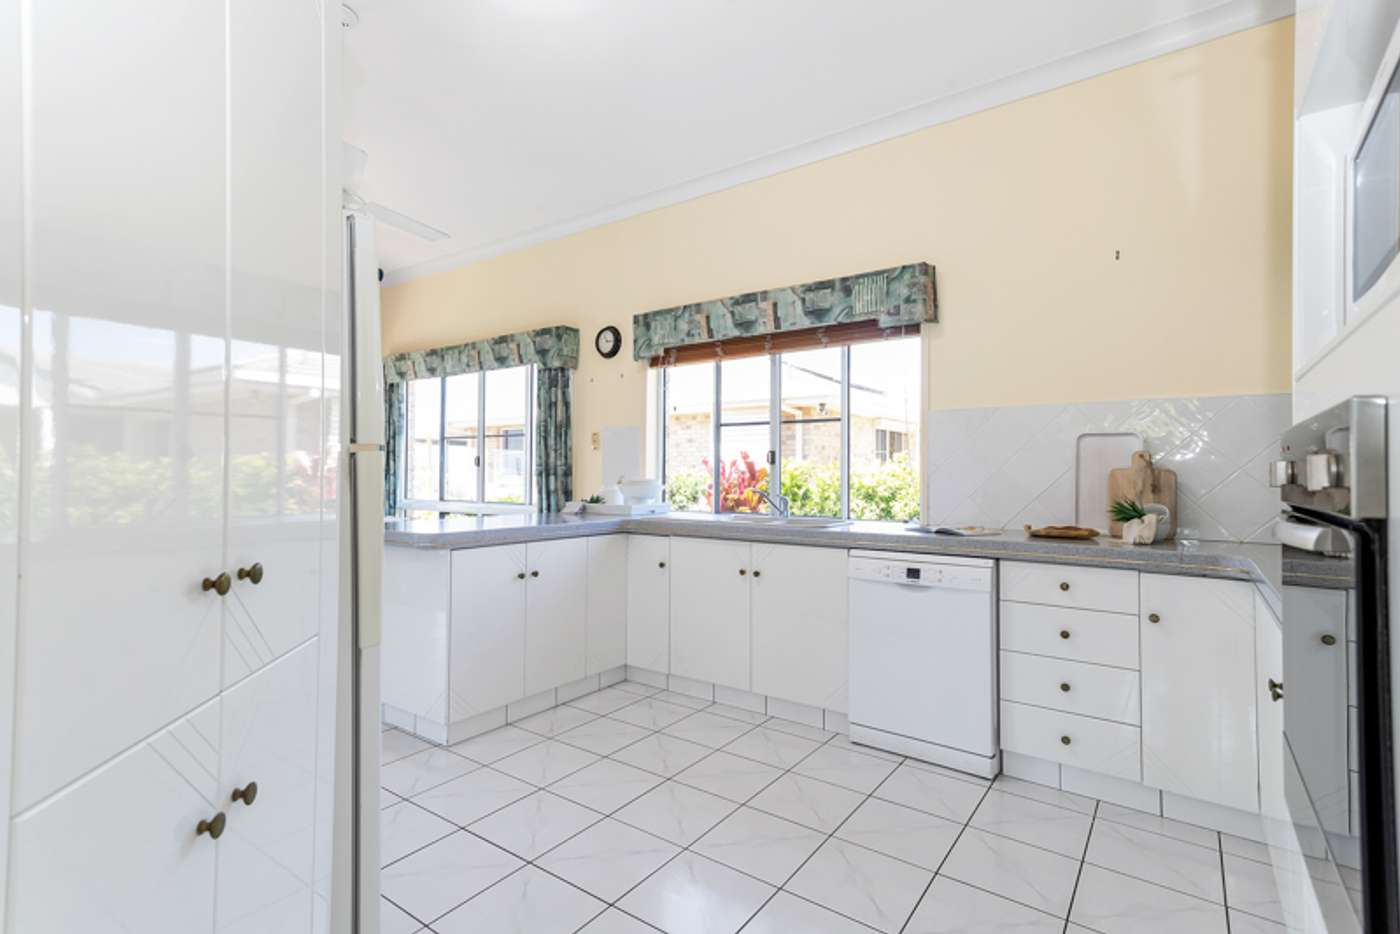 Seventh view of Homely house listing, 10 Galvin Street, Beaconsfield QLD 4740